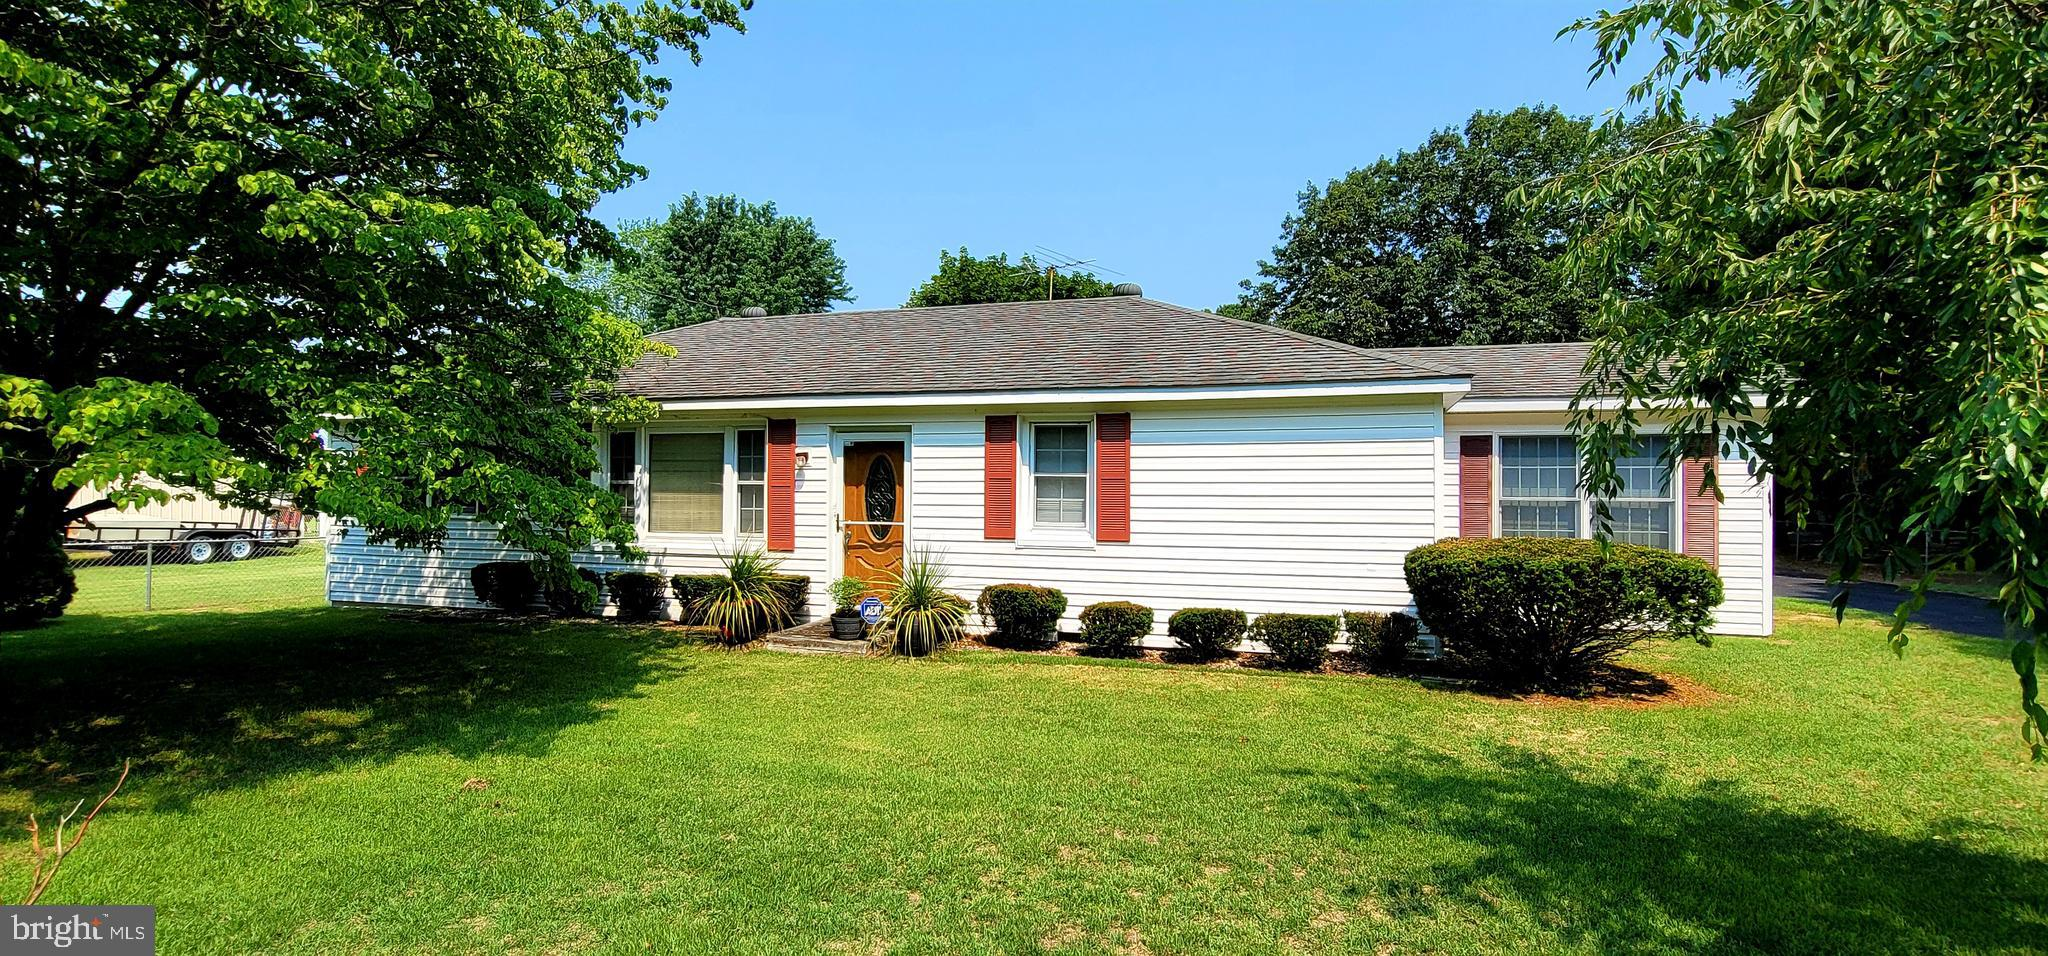 Charming 3 Bedroom 2 Full Bath home 1 block from the Water in Downtown Crumpton.  Easy access to Pub